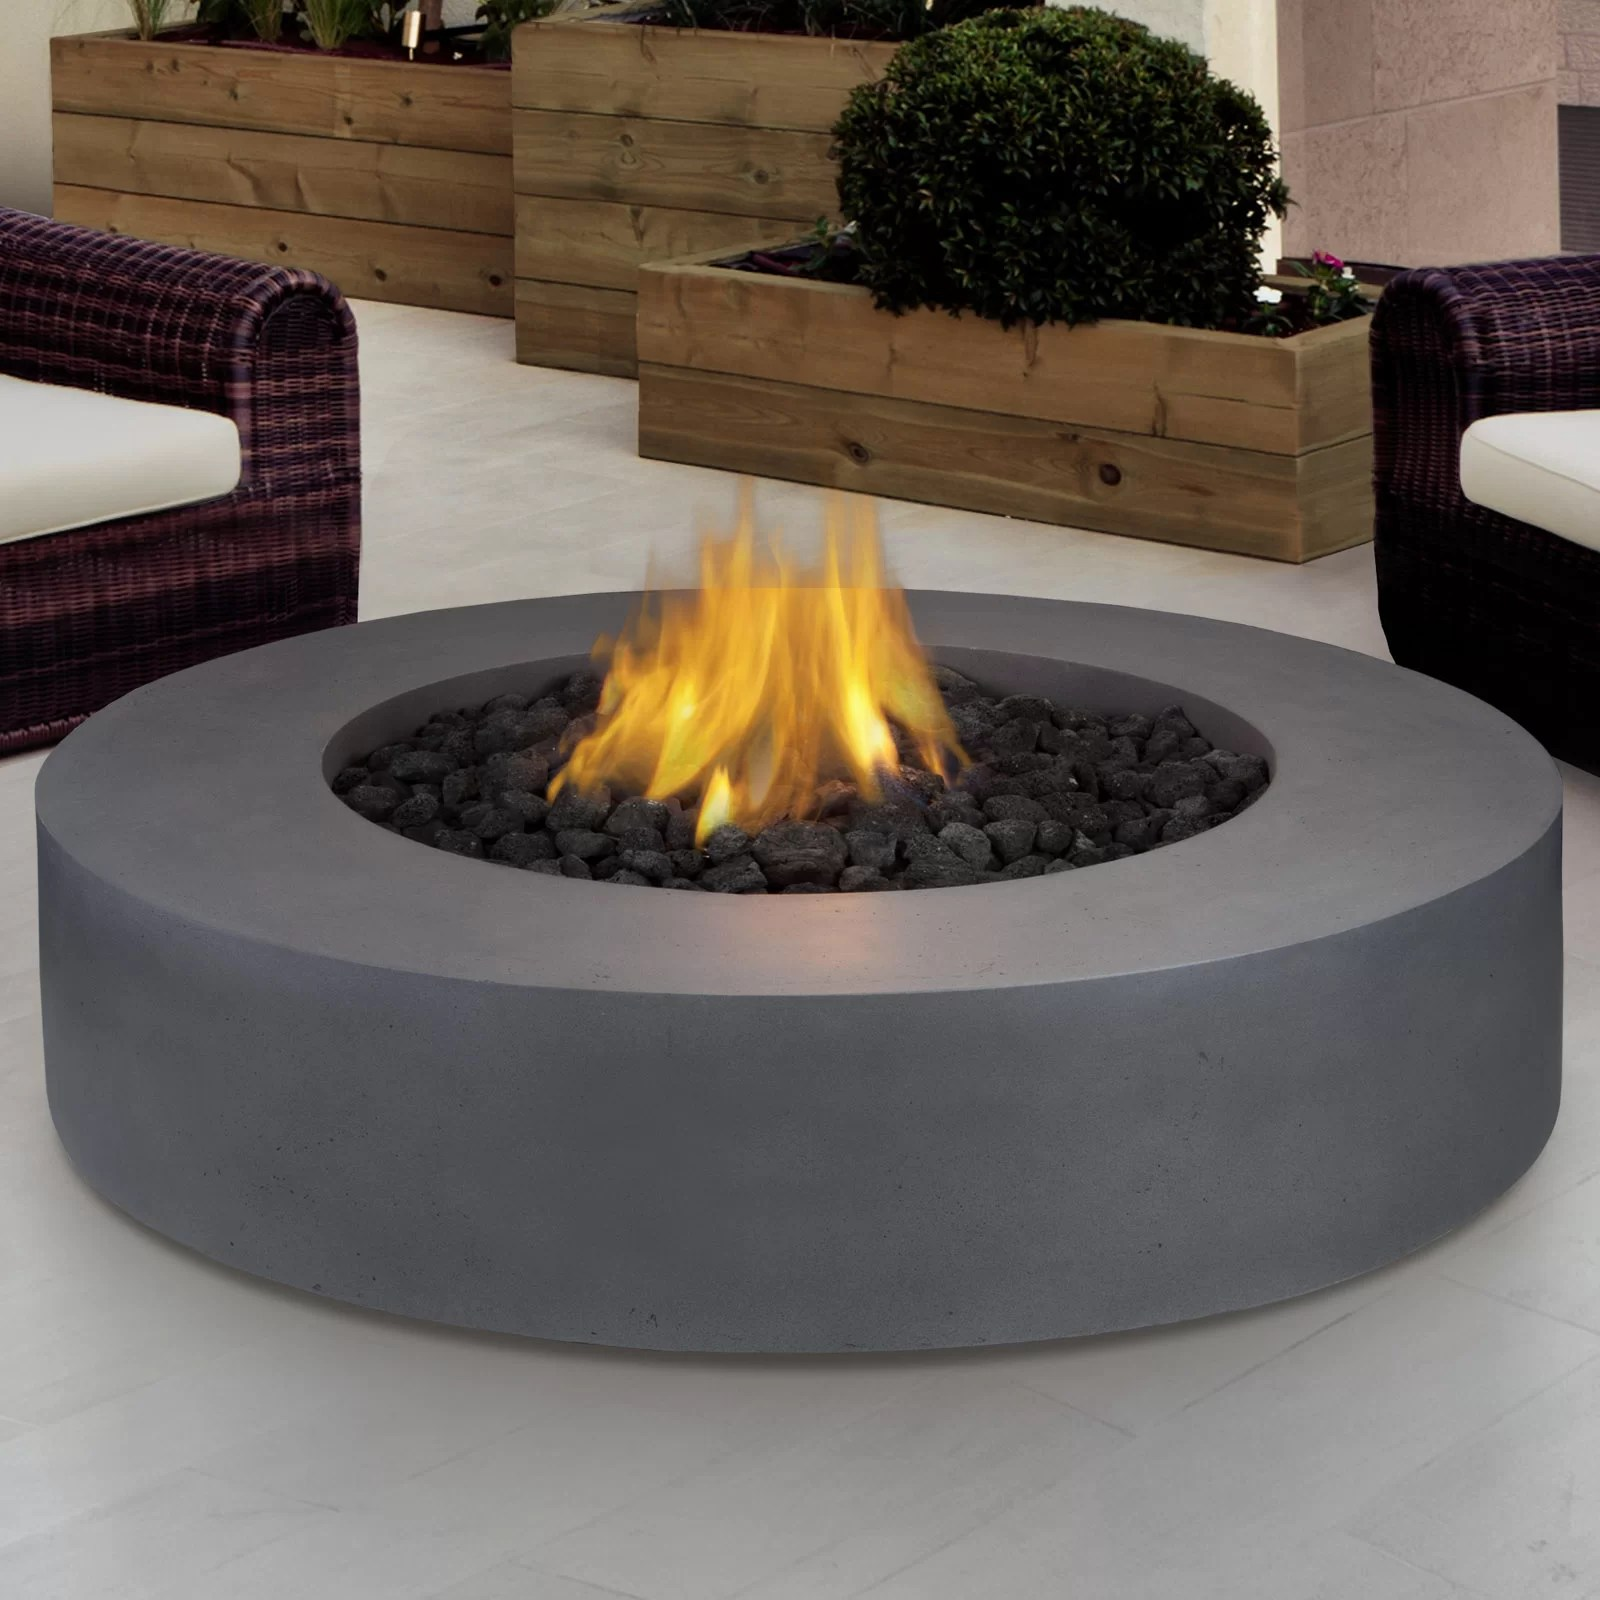 Real Flame Mezzo Propane Fire Pit Table & Reviews | Wayfair on Living Room Fire Pit id=85349